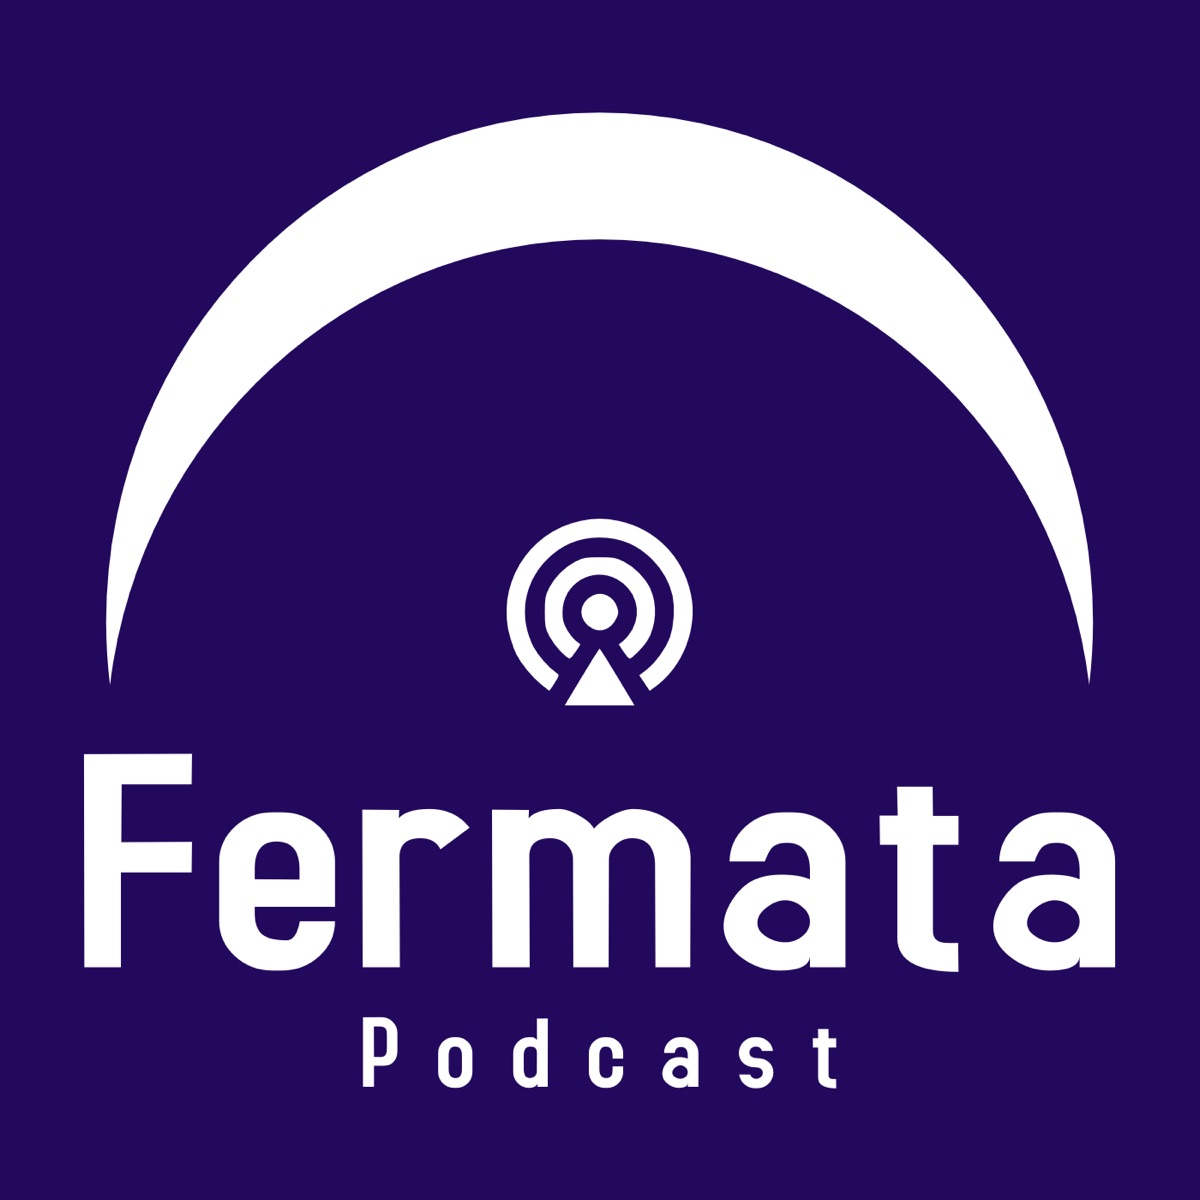 Fermata Podcasts